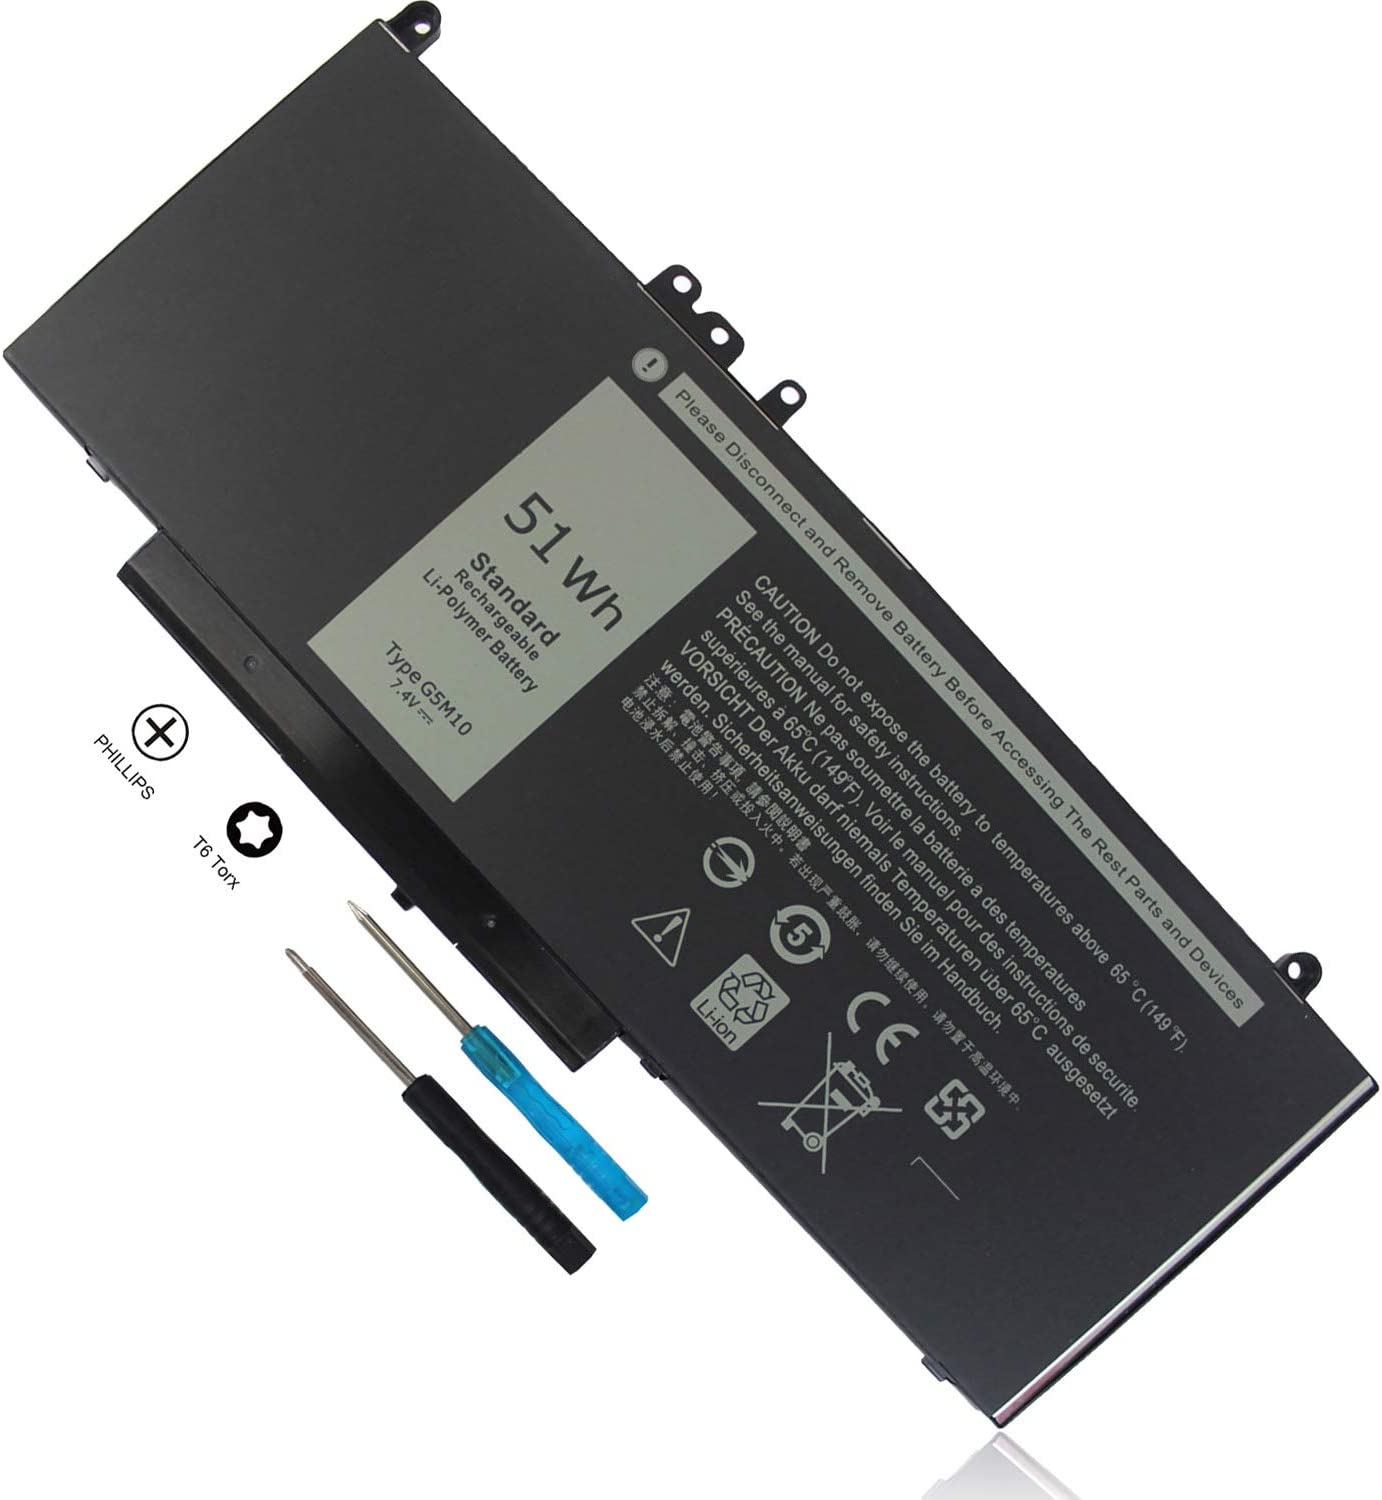 7.4V 51Wh Type G5M10 Laptop Battery Compatible with Dell Latitude E5450 E5550 E5250 15.6 inch 8V5GX R9XM9 WYJC2 1KY05 080-854-0066 0WYJC2 451-BBLN Standard Rechargeable 4-Cell Li-Polymer Battery New